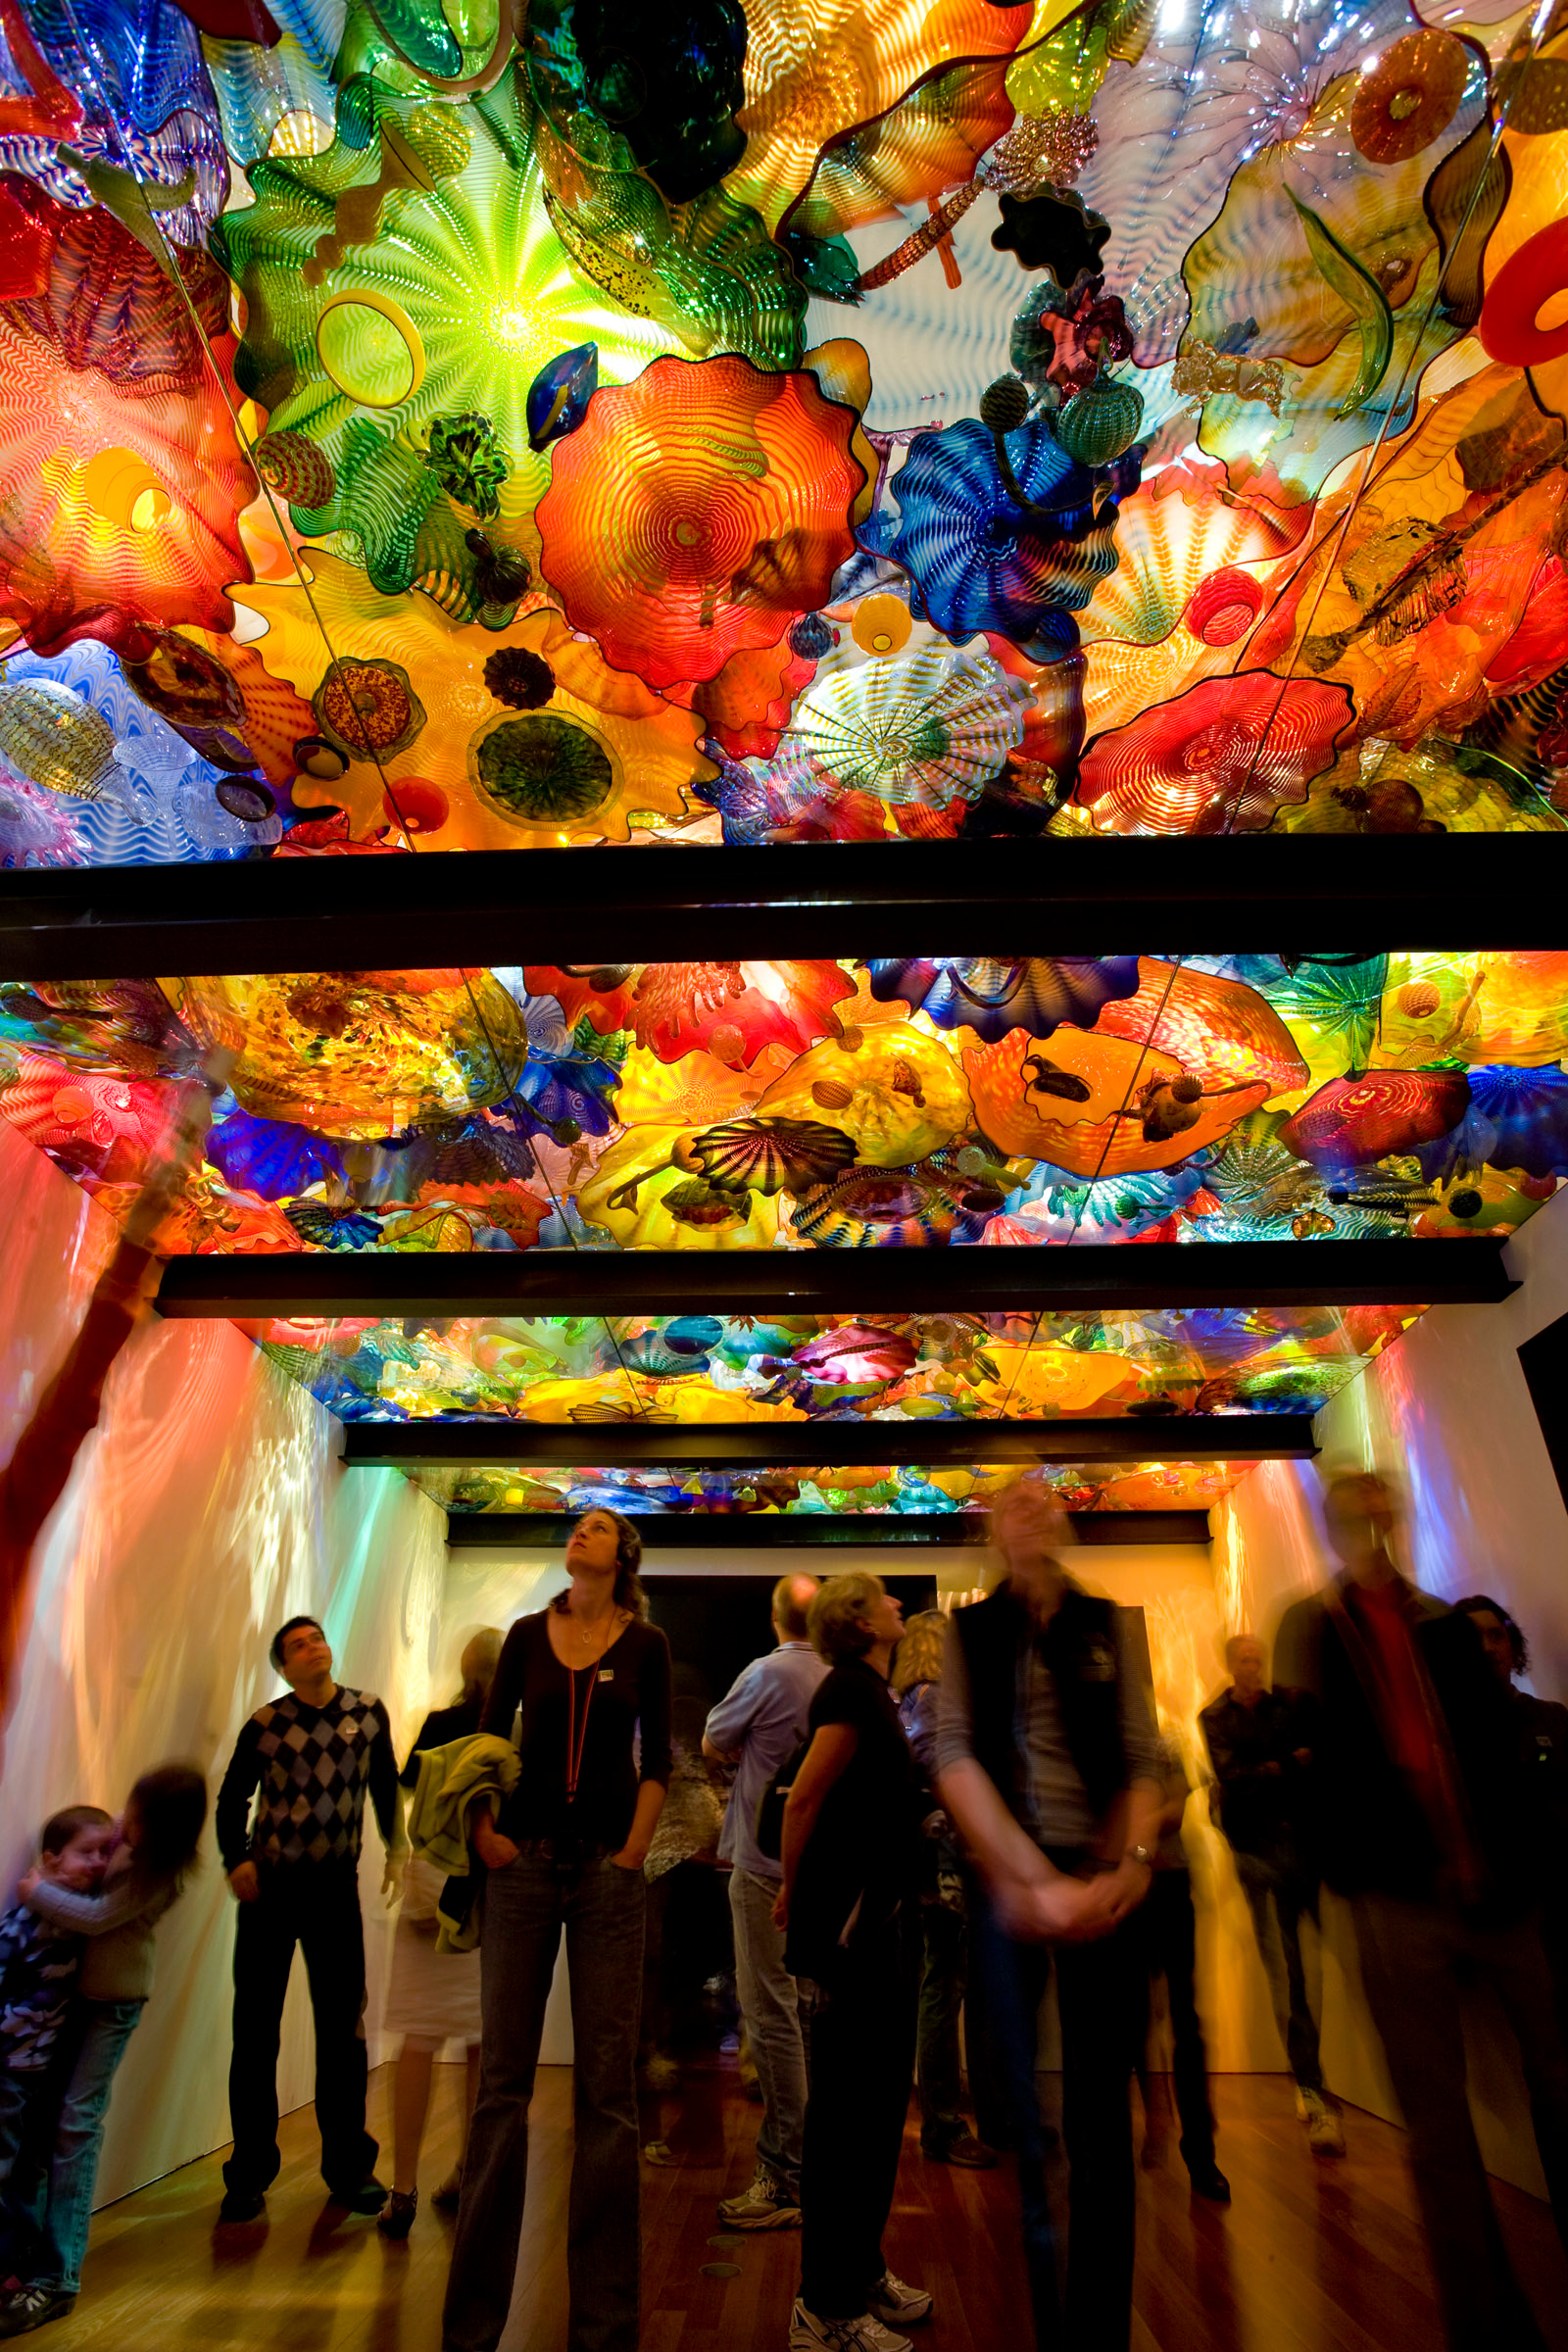 Chihuly Garden Amp Glass In Seattle Wa 206 753 4940